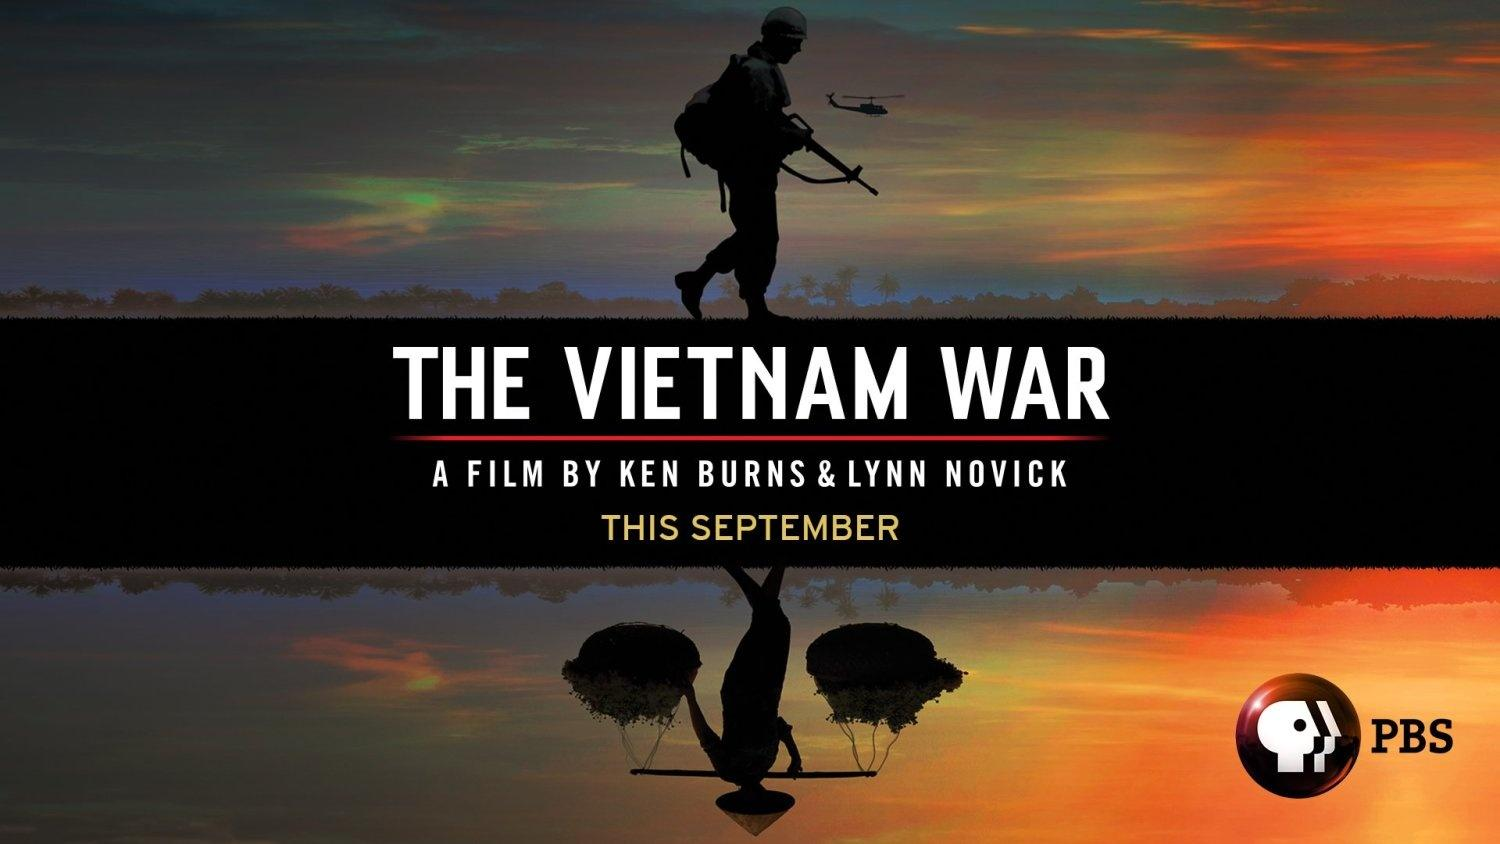 The Vietnam War A Film by Ken Burns and Lynn Novick This September